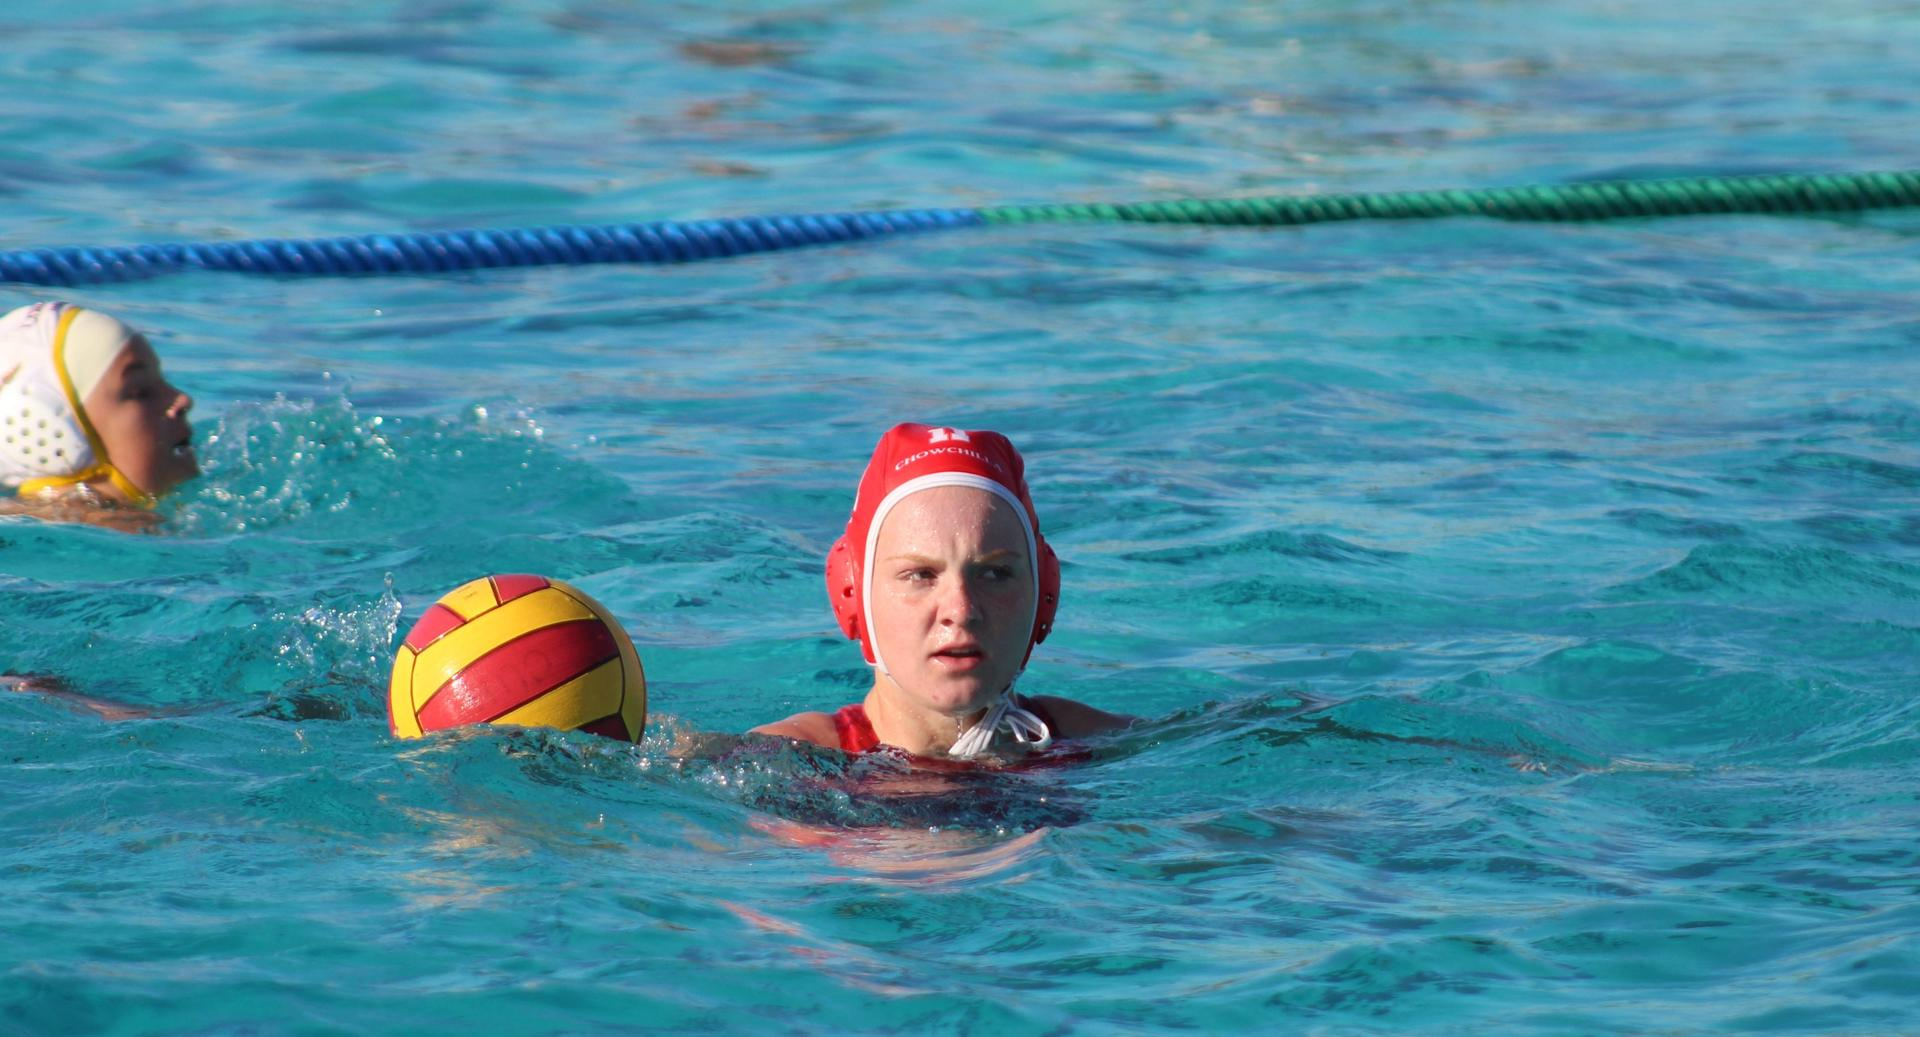 Girls playing water polo against Sierra